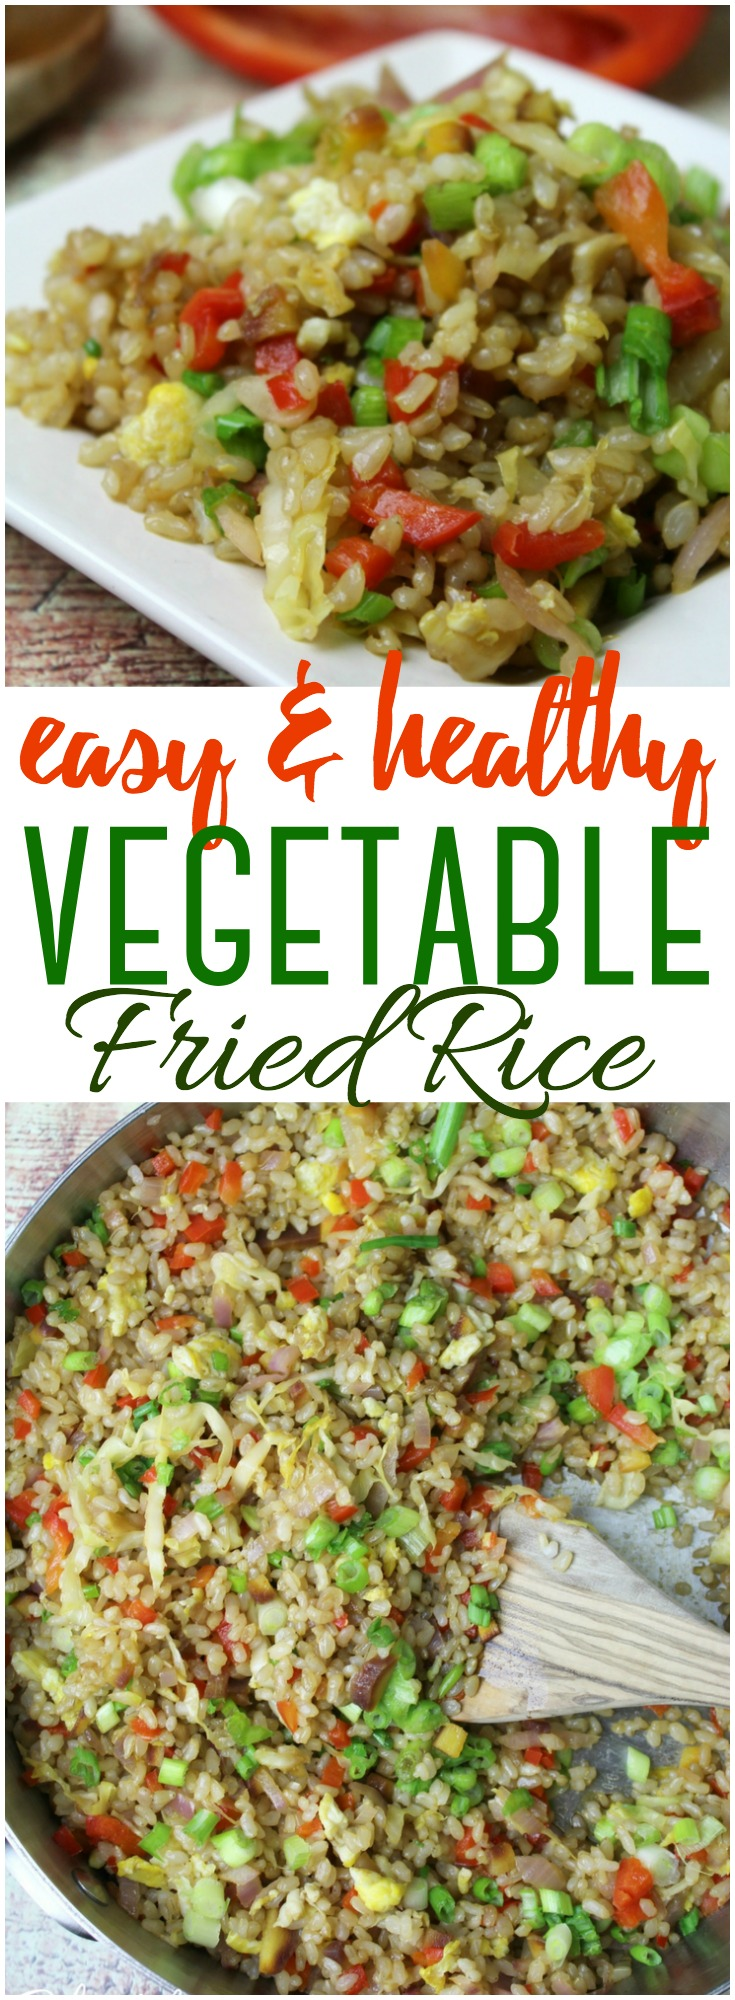 Combine a few simple vegetables with scrambled eggs and rice in this easy, healthy vegetable fried rice seasoned - it's soy-free and the perfect way to use up your odds and ends!  #friedrice #vegetables #easy #healthy #sidedish #soyfree #meatless